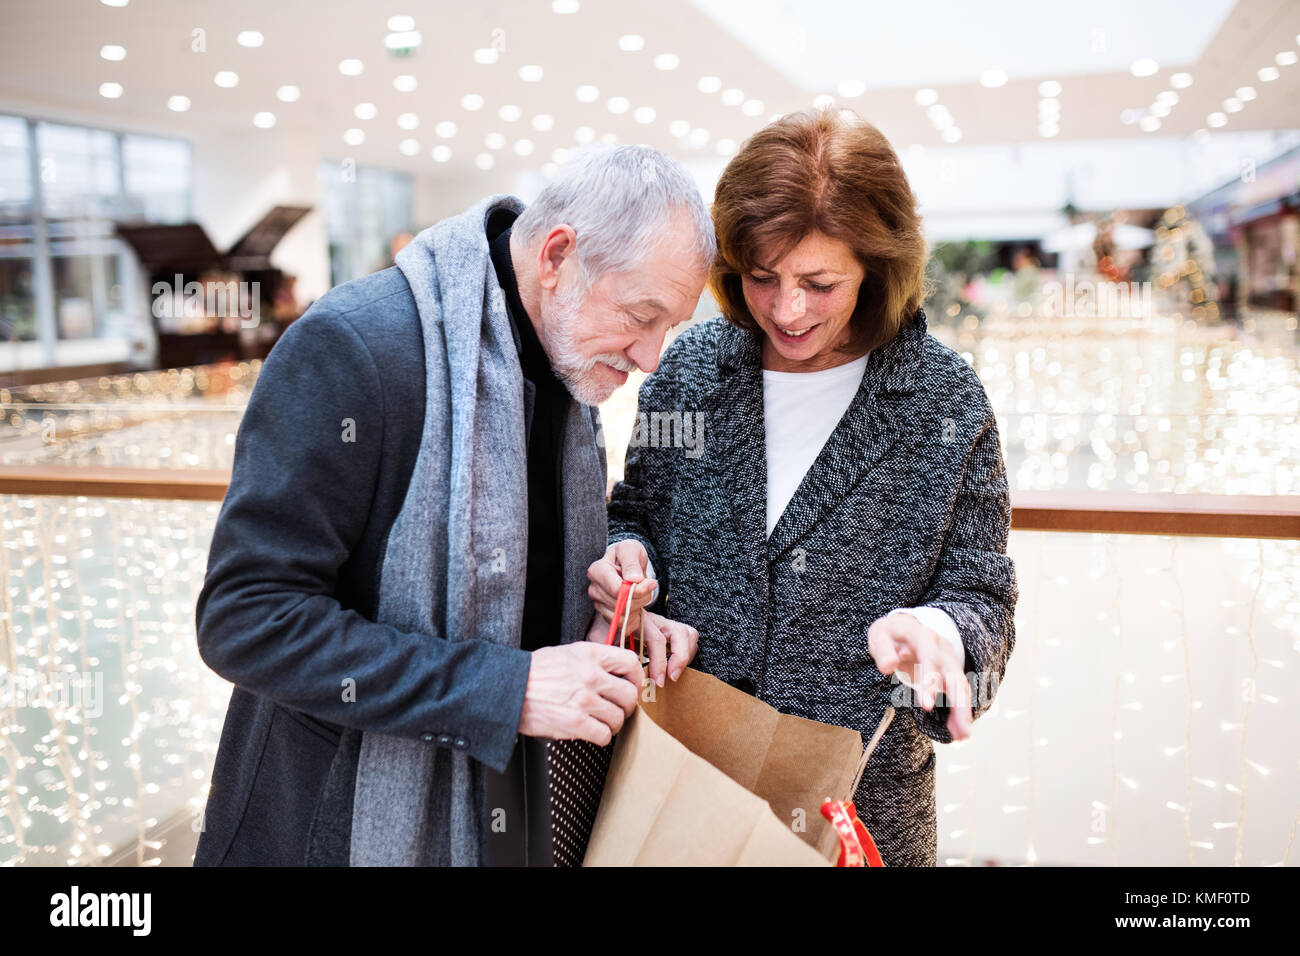 Coppia senior facendo shopping di Natale. Foto Stock